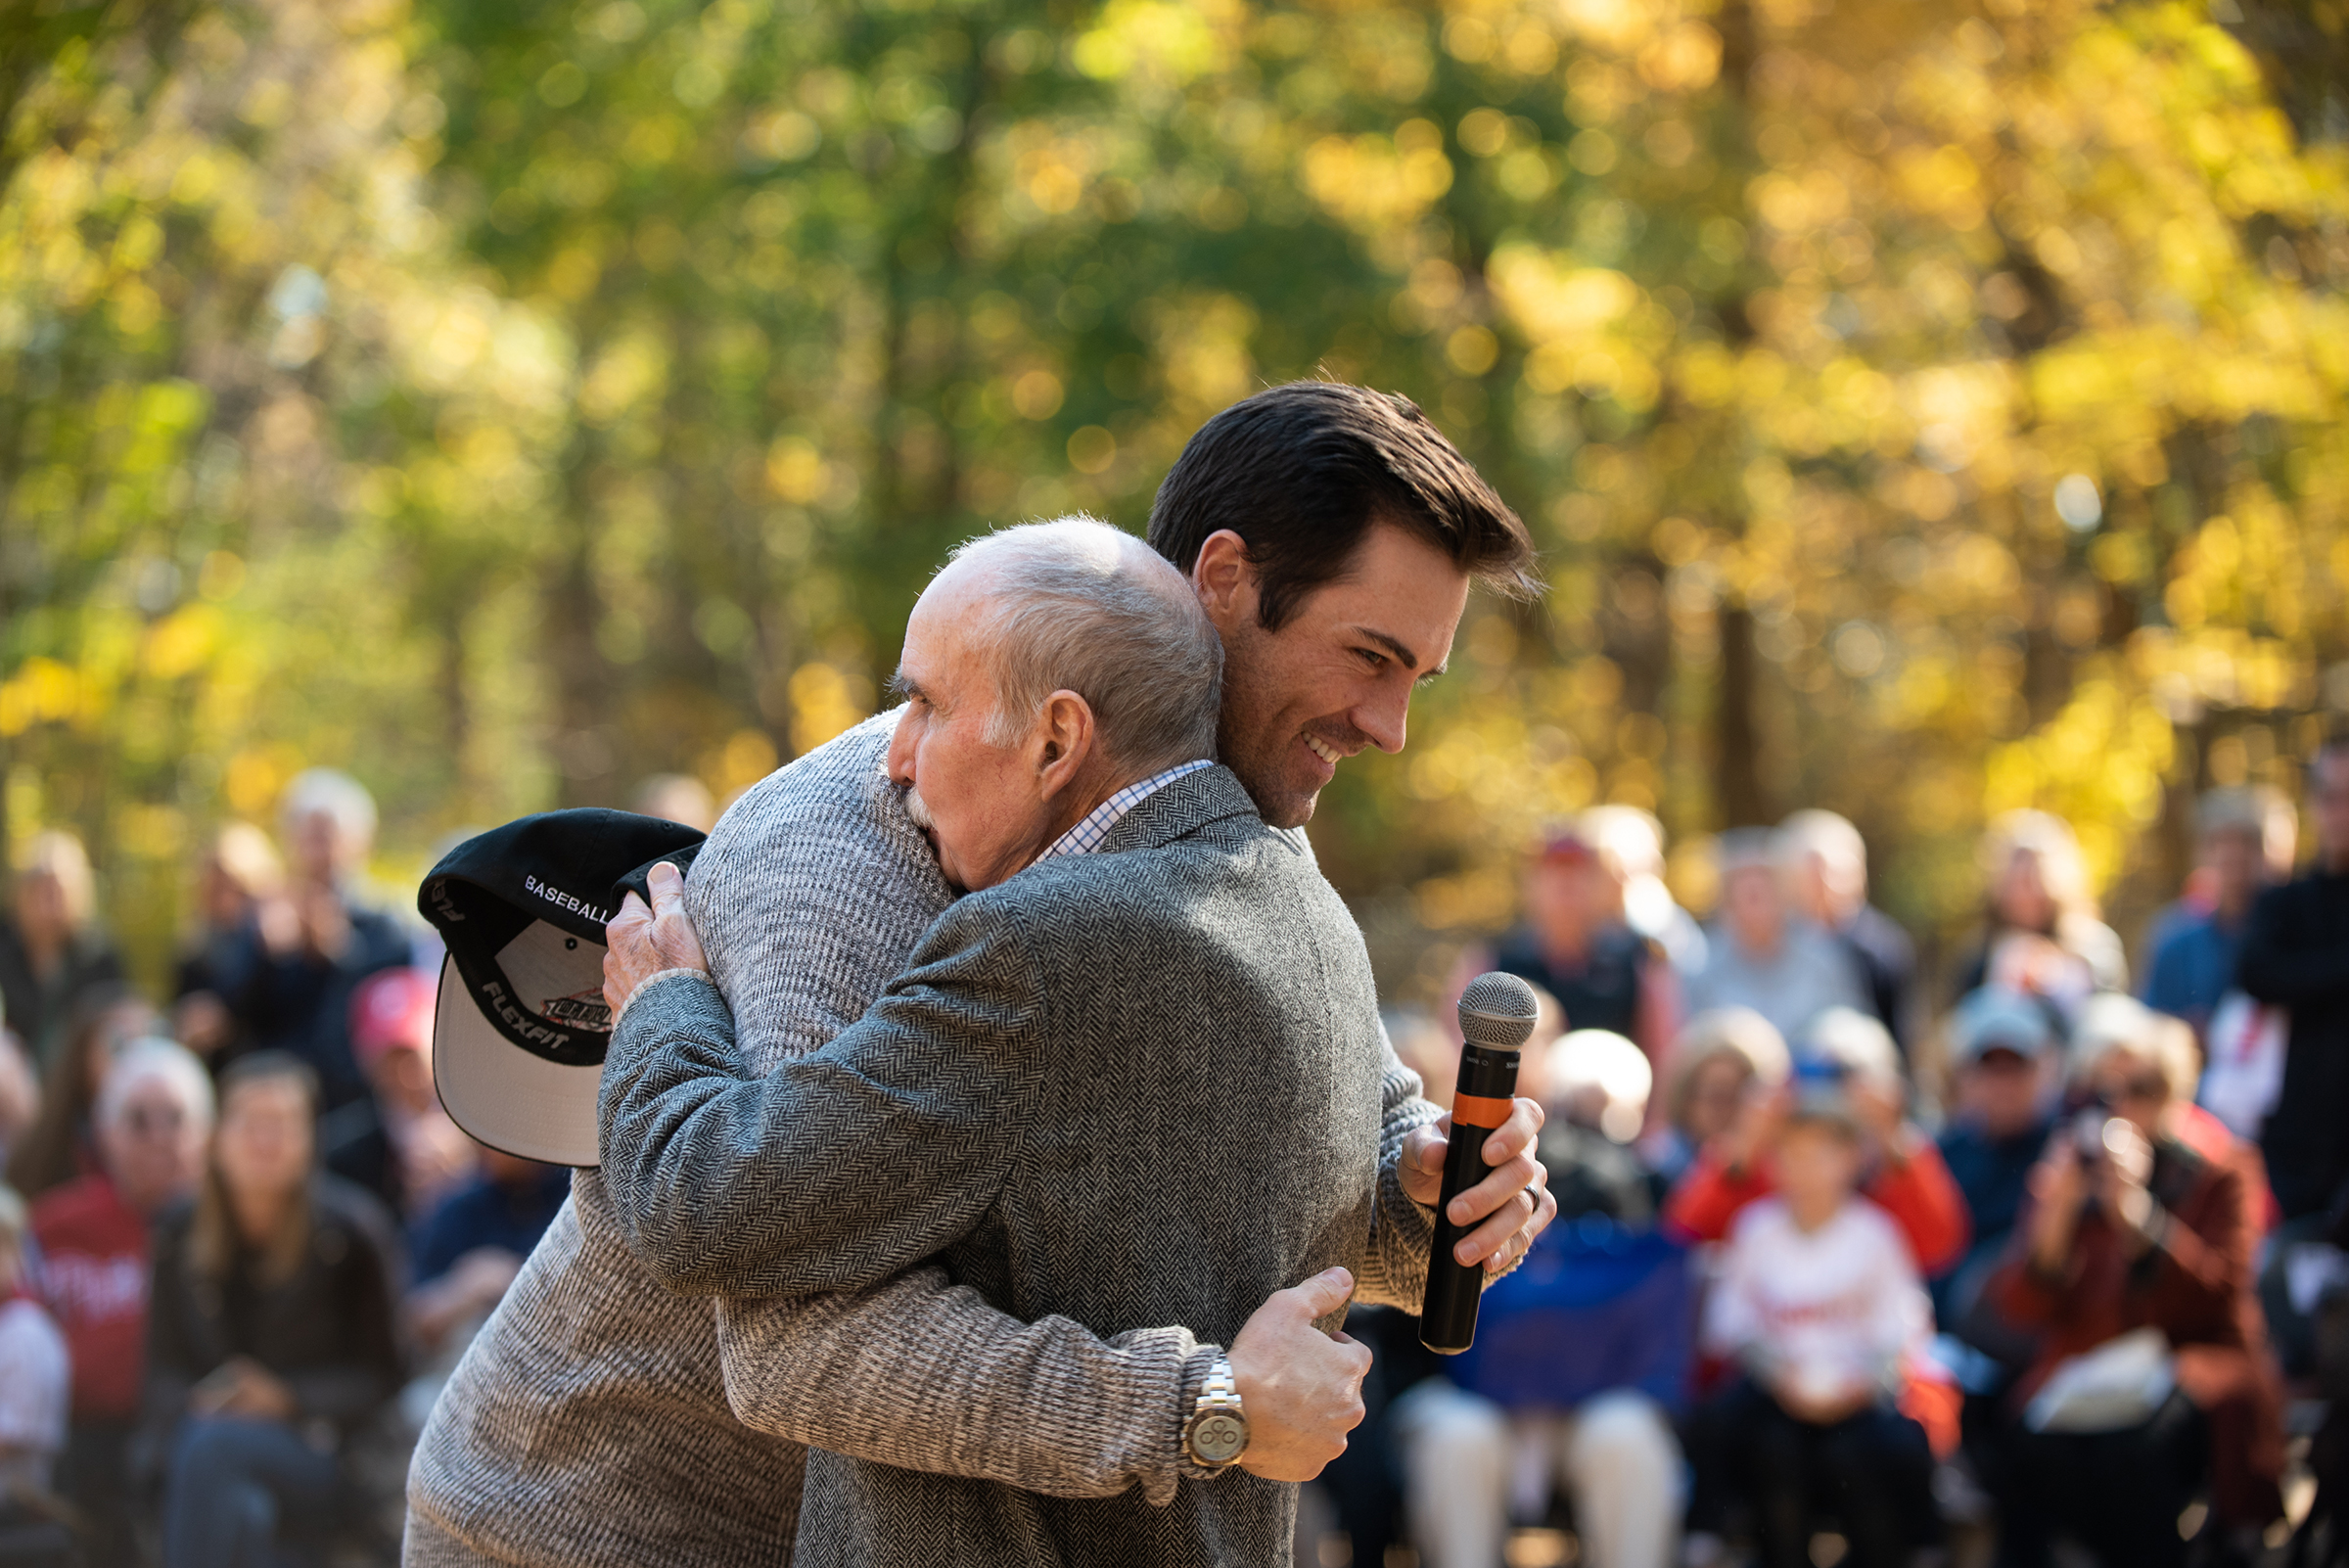 Former Philadelphia Phillies pitcher Cole Hamels hugs David P. Montgomery, Chairman of the Philadelphia Phillies at a dedication event honoring Montgomery on Sunday, November 4, 2018. Daisy Field in Roxborough was renamed in honor of Montgomery, who started with the Phillies in 1971 as a season-ticket salesman. He worked his way up to becoming marketing director, sales director and eventually the club president. Brianna Spause / Philadelphia Parks & Recreation